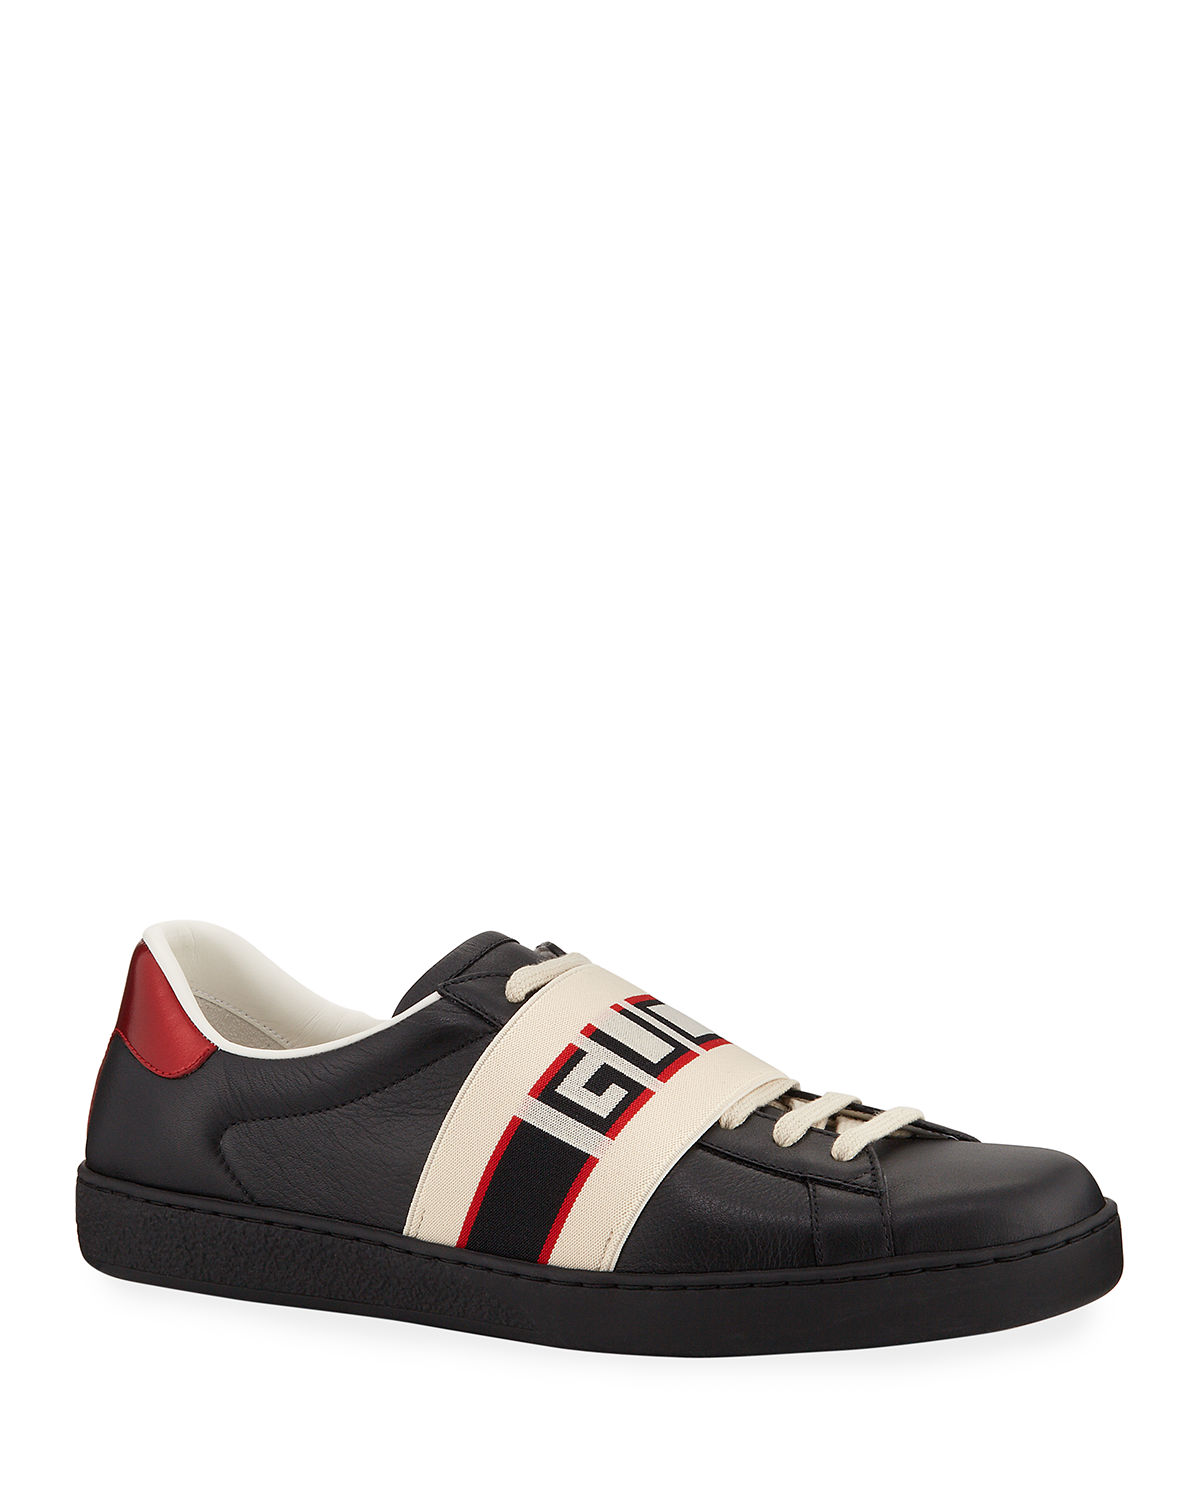 Gucci Gucci Stripe Leather Sneaker Neiman Marcus